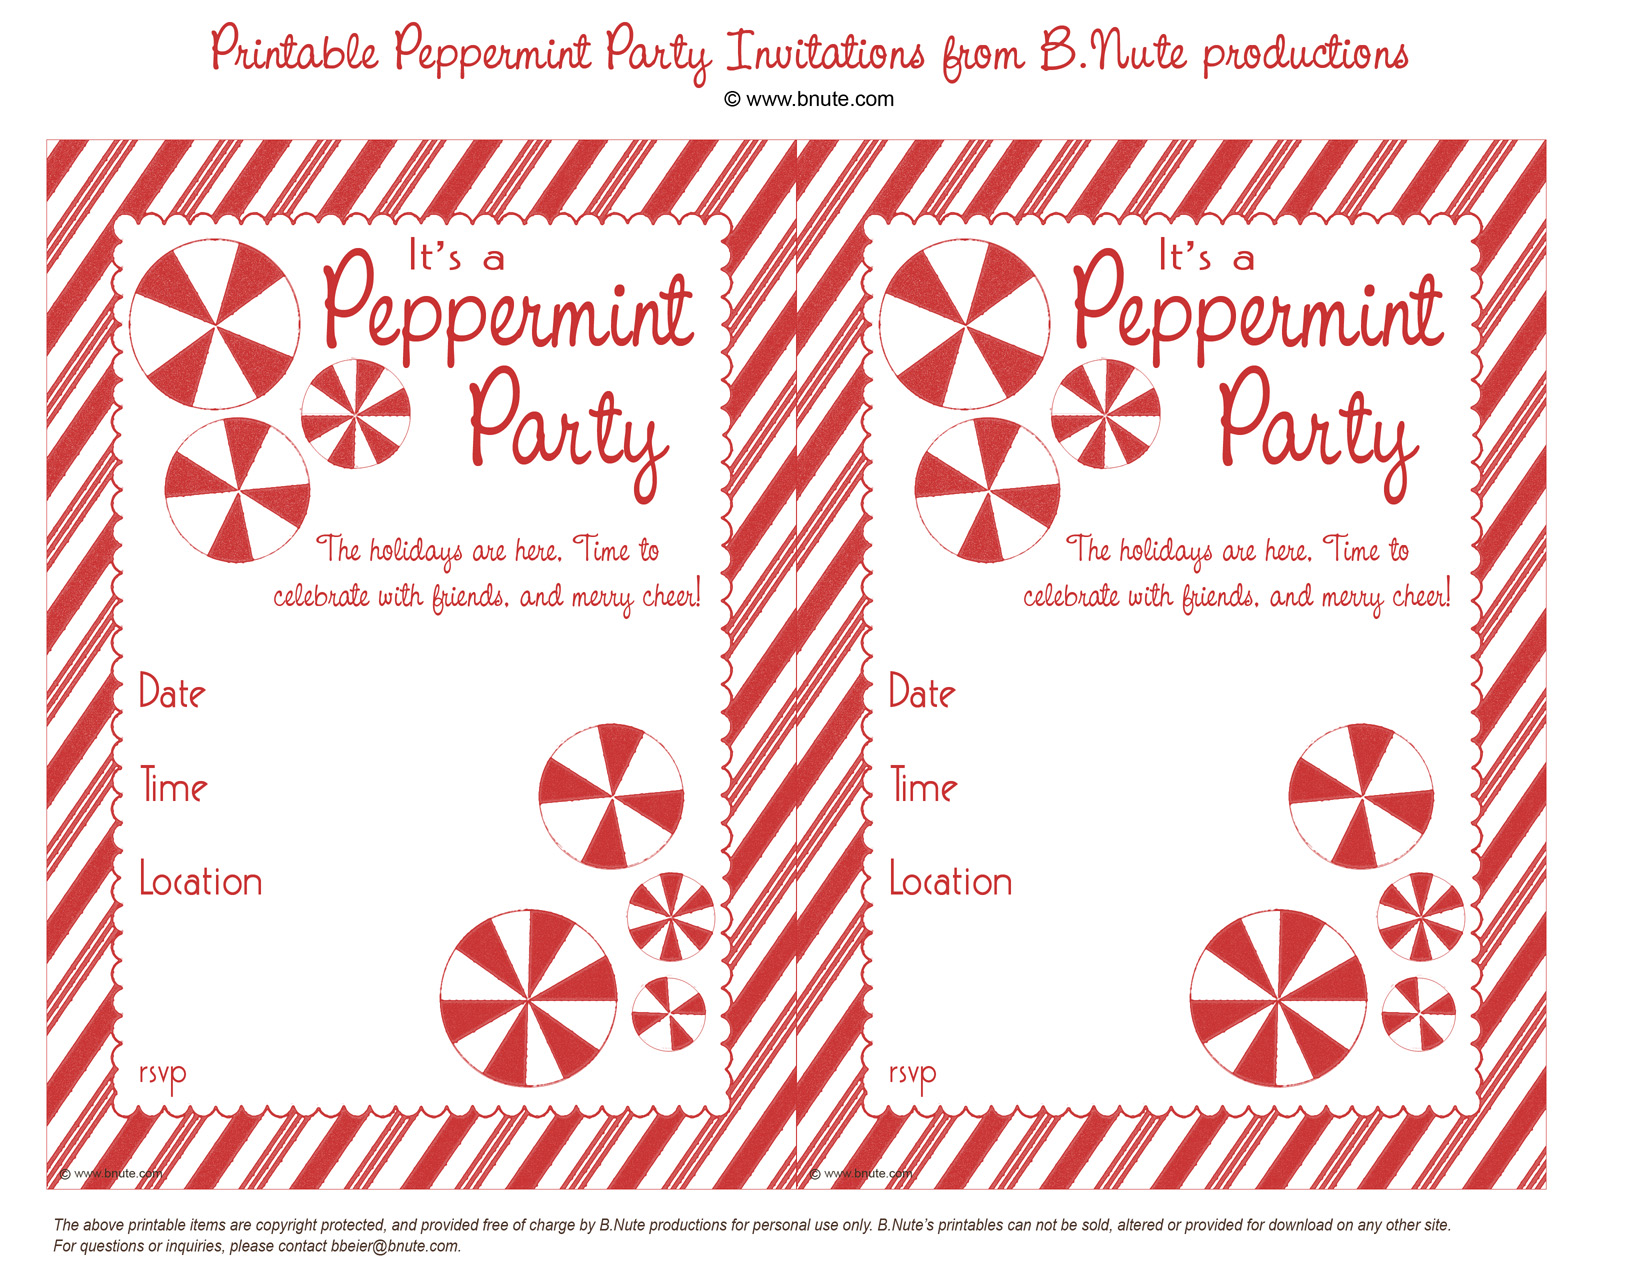 doc 15002100 printable christmas party invitation bnute productions printable peppermint party invitations printable christmas party invitation